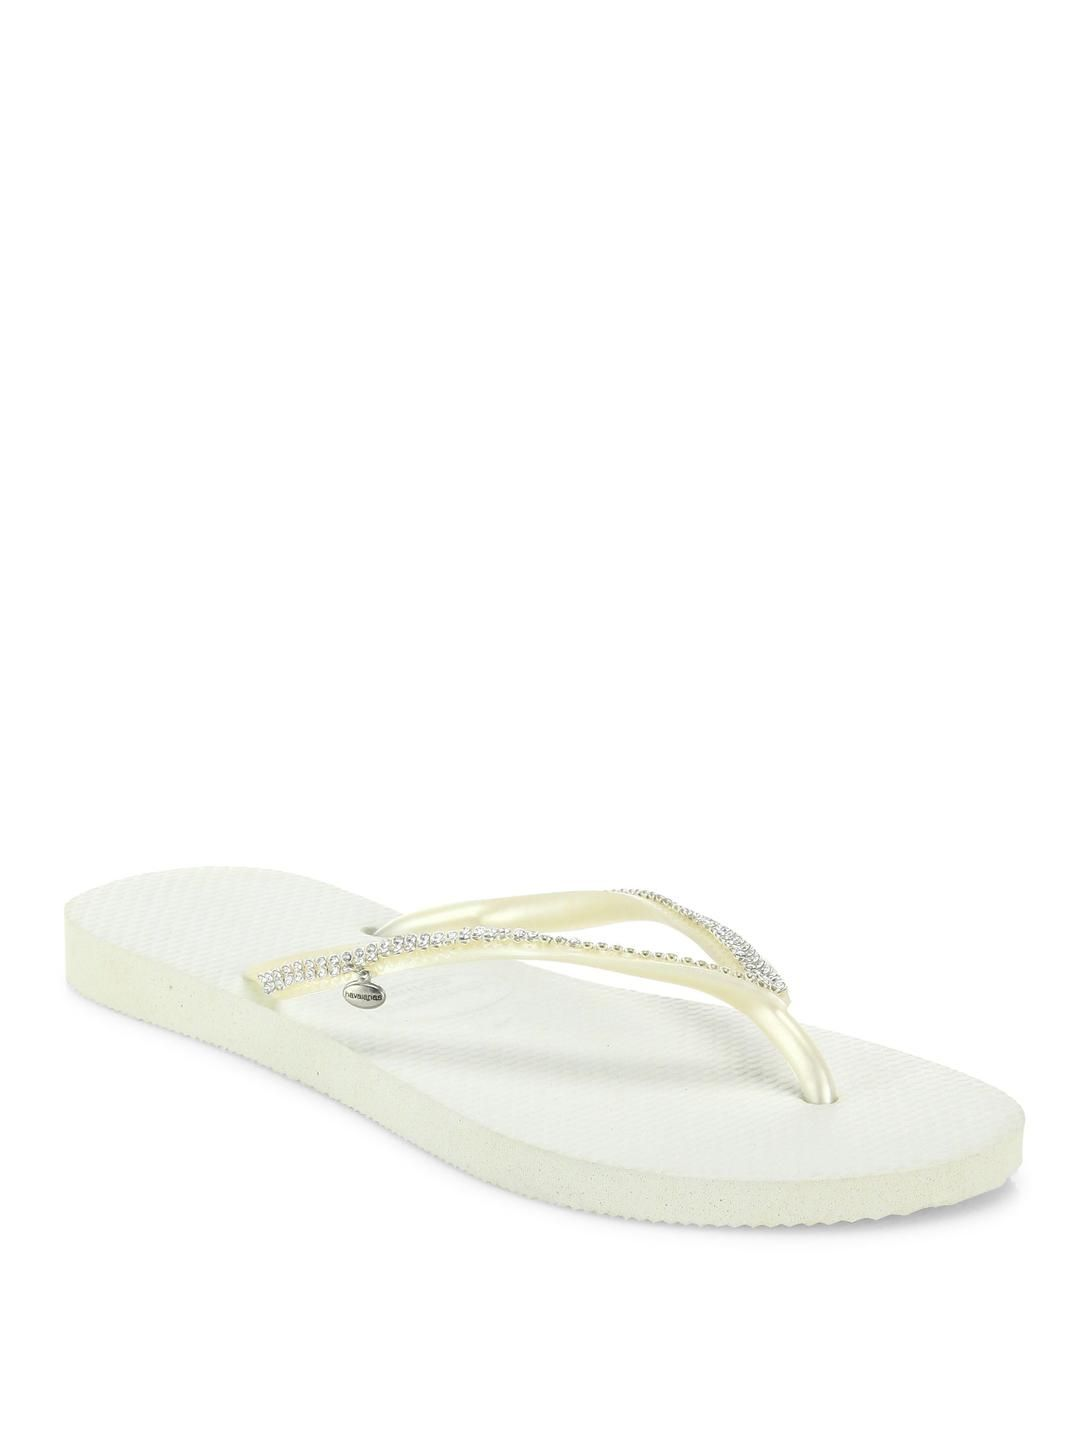 Wear these to the beach available in sizes 35 to 42